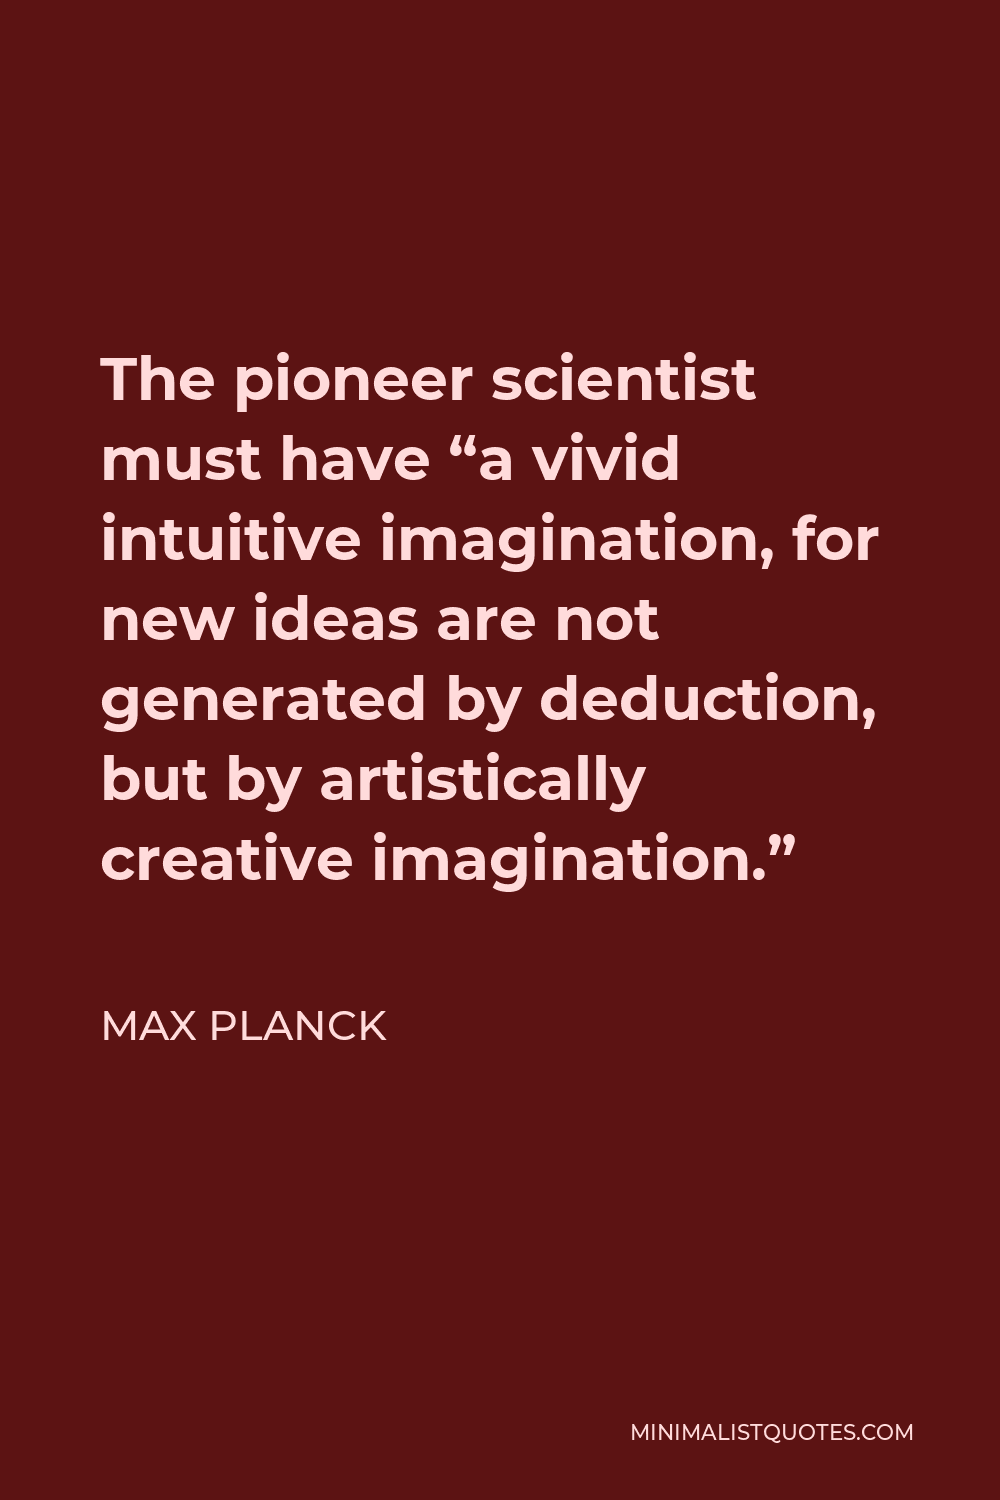 """Max Planck Quote - The pioneer scientist must have """"a vivid intuitive imagination, for new ideas are not generated by deduction, but by artistically creative imagination."""""""